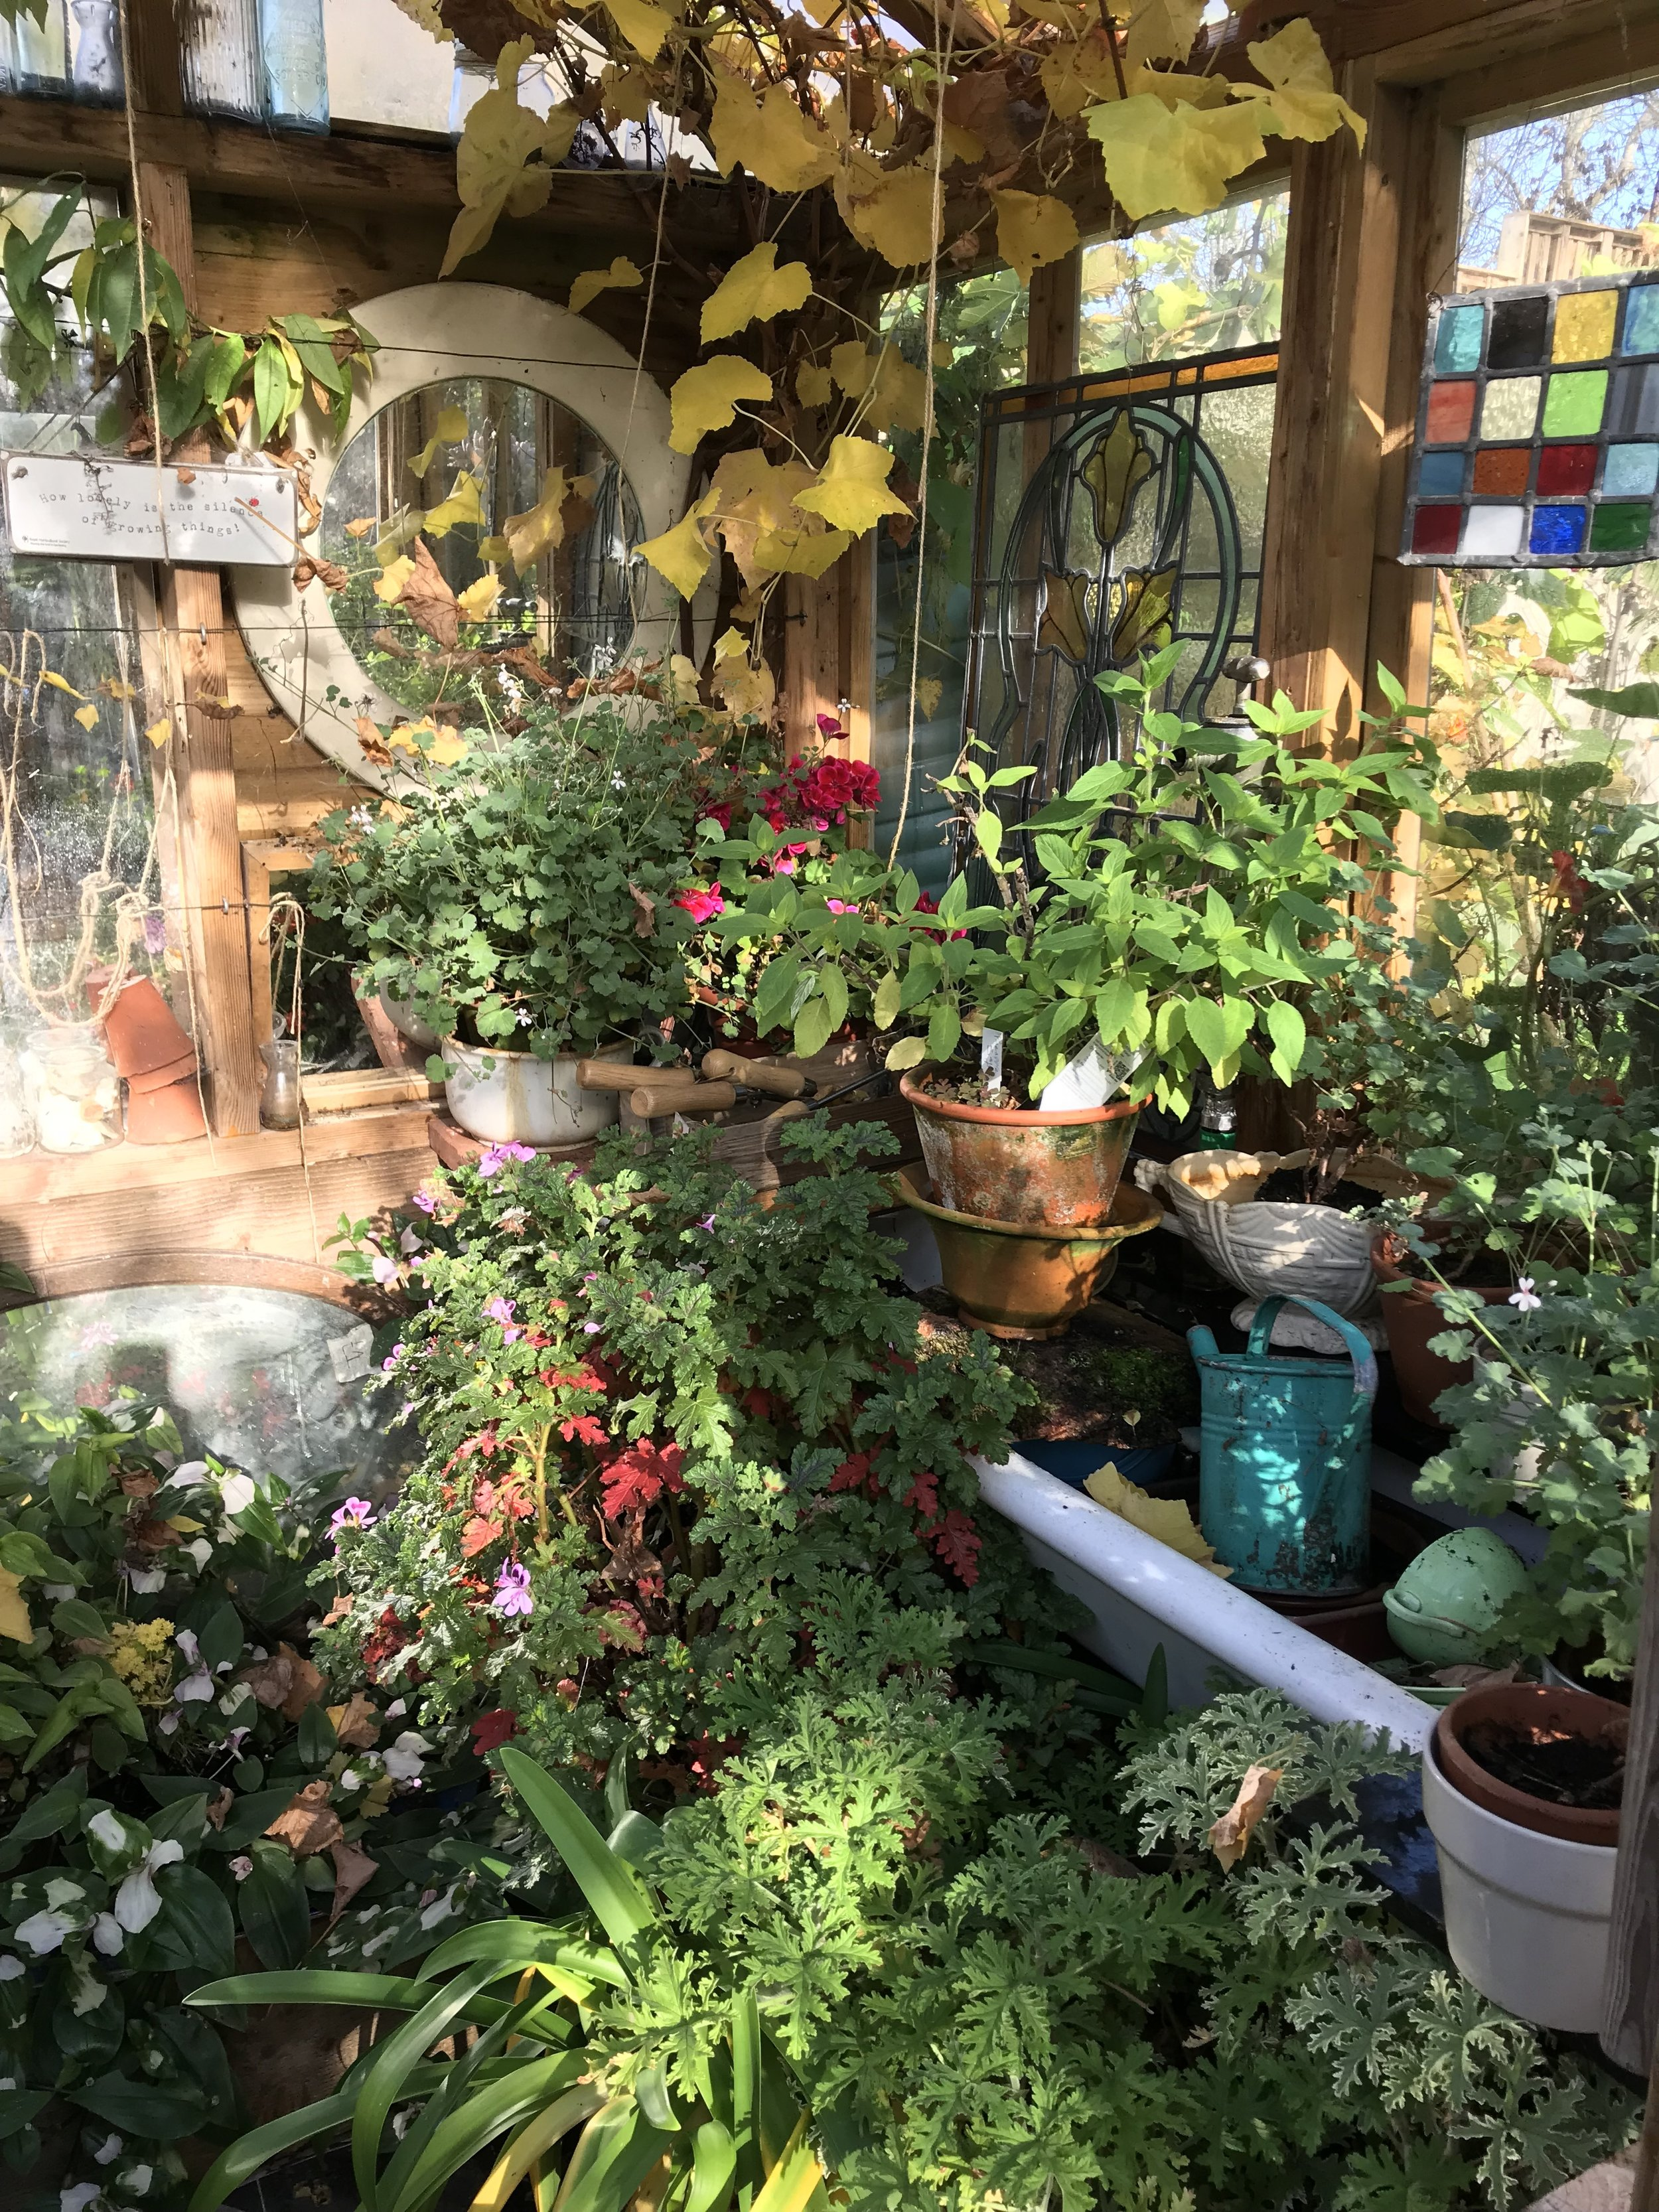 Mandy's Greenhouse full to the brim in preparation for winter